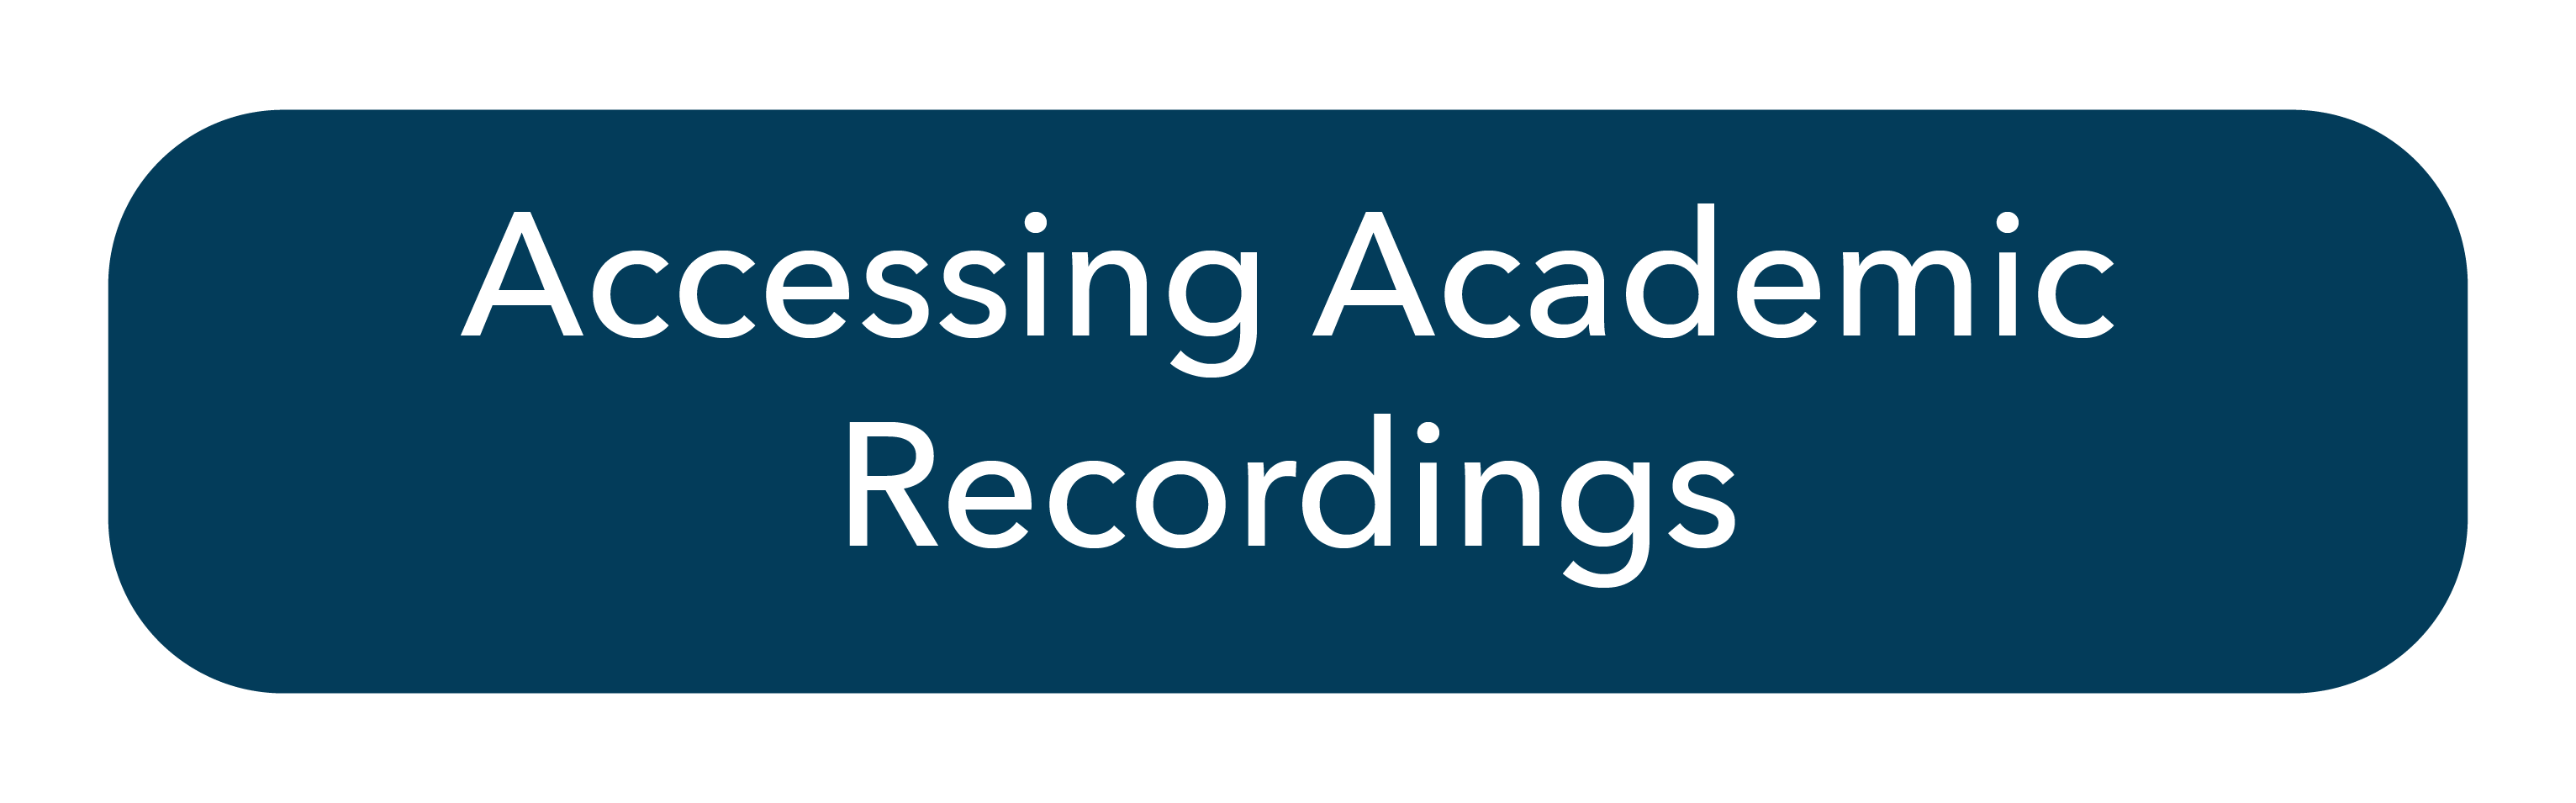 Accessing Academic Recordings